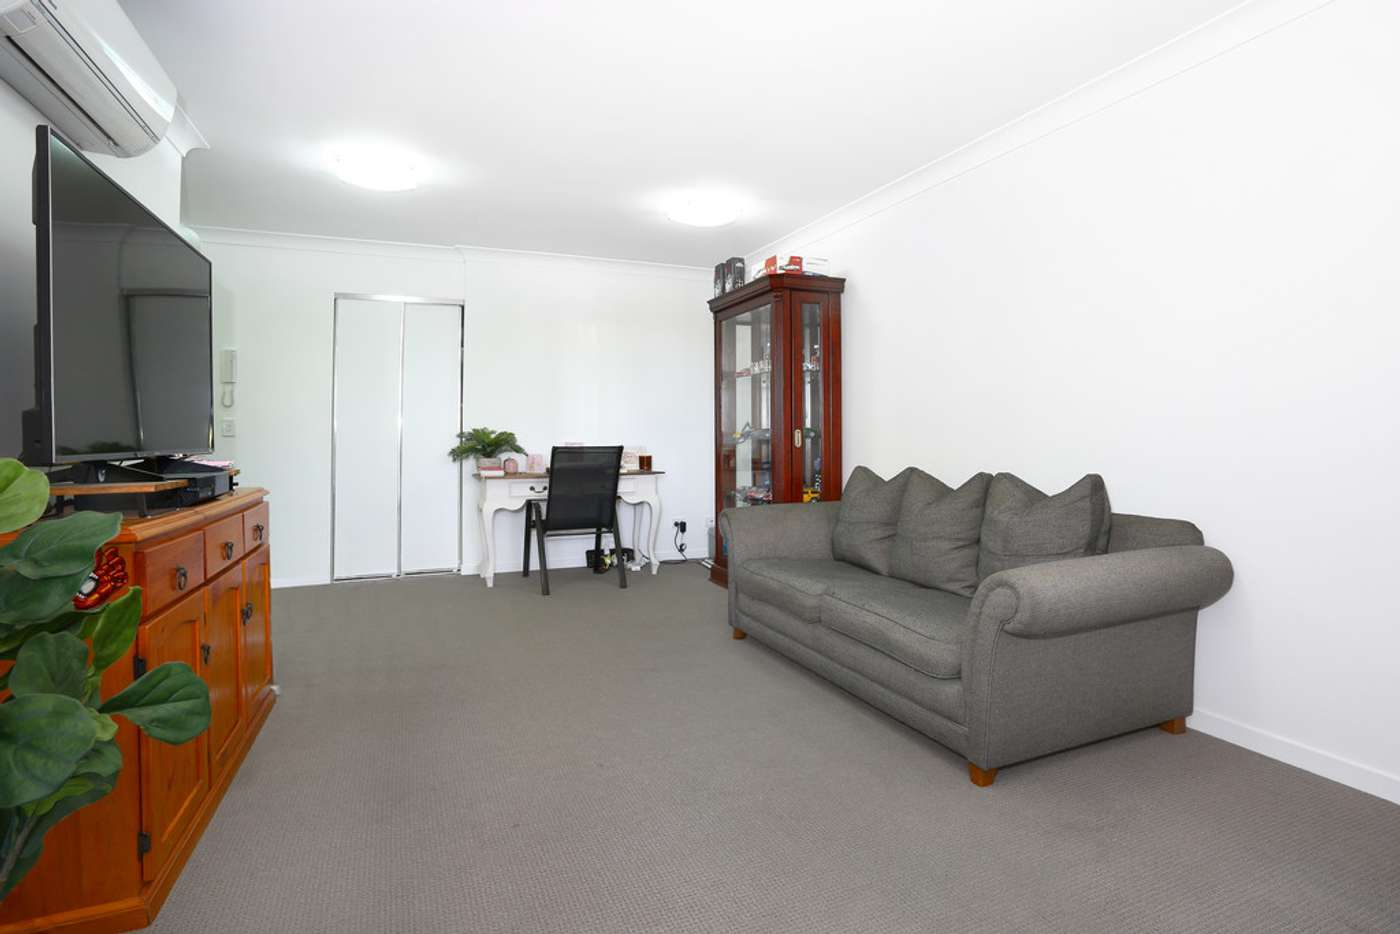 Sixth view of Homely apartment listing, 14/14-16 Proud Street, Labrador QLD 4215